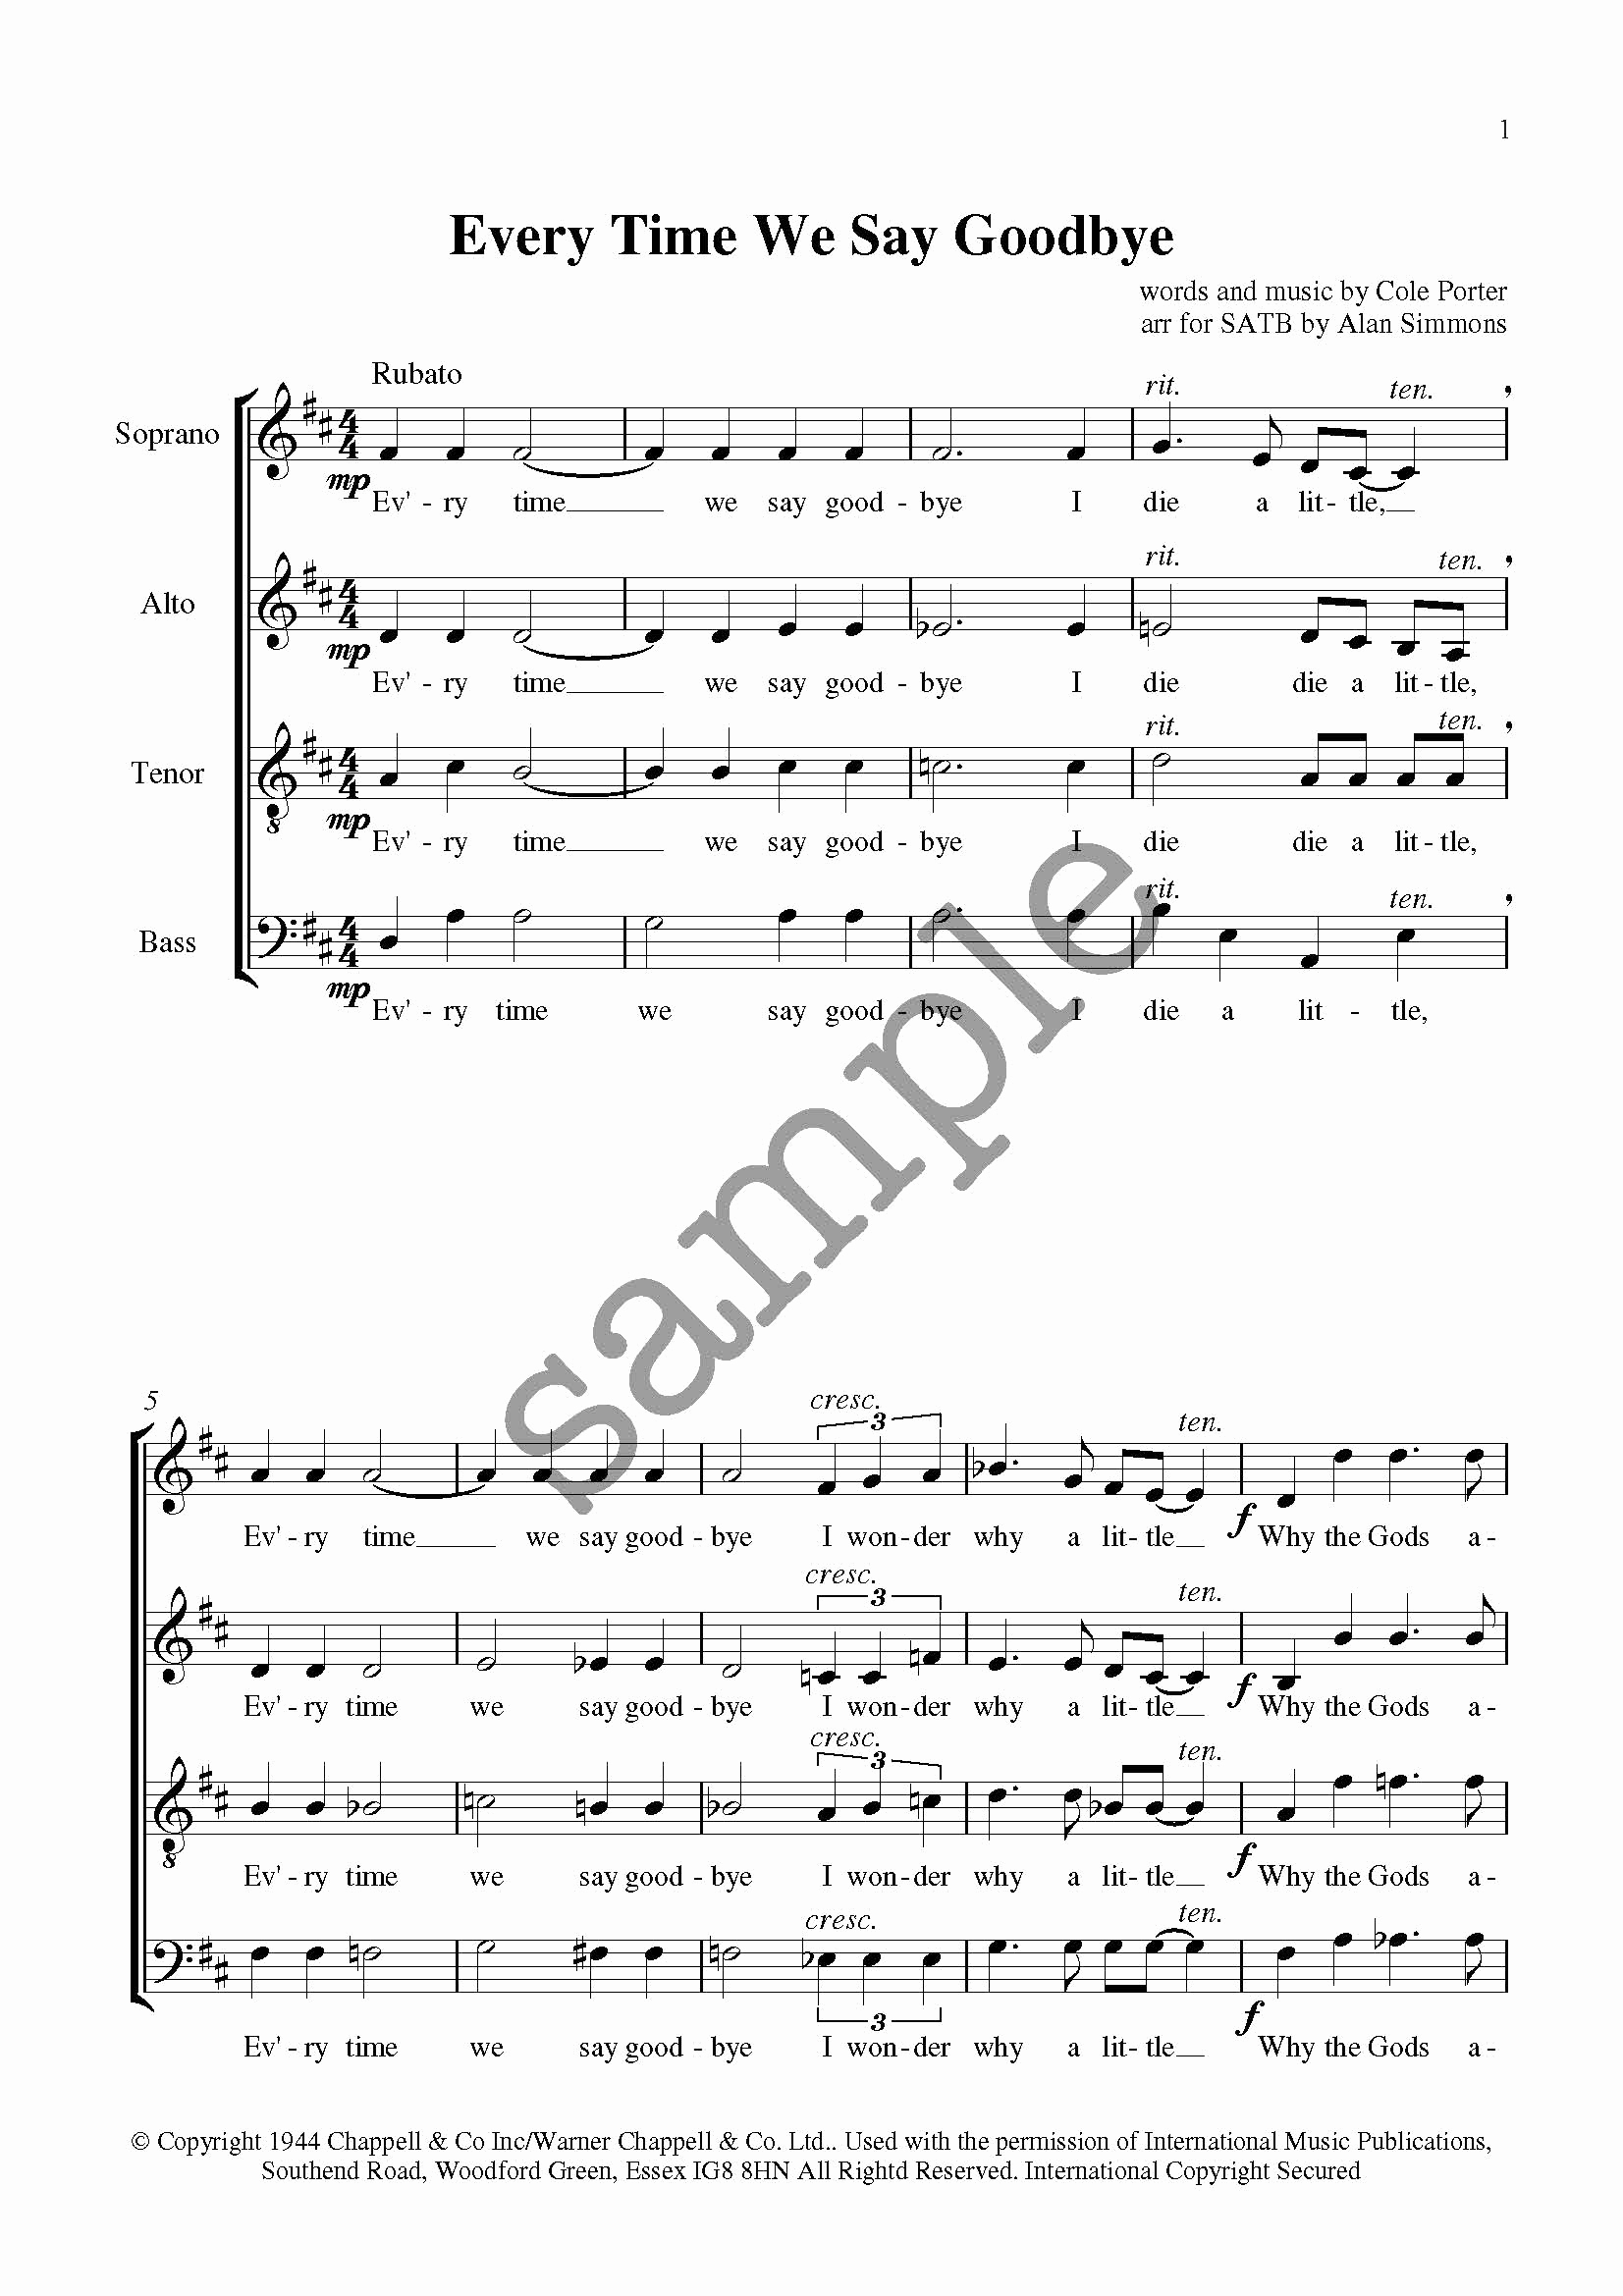 Time to Say Goodbye Sheet Music Of Every Time We Say Goodbye Alan Simmons Music Choral